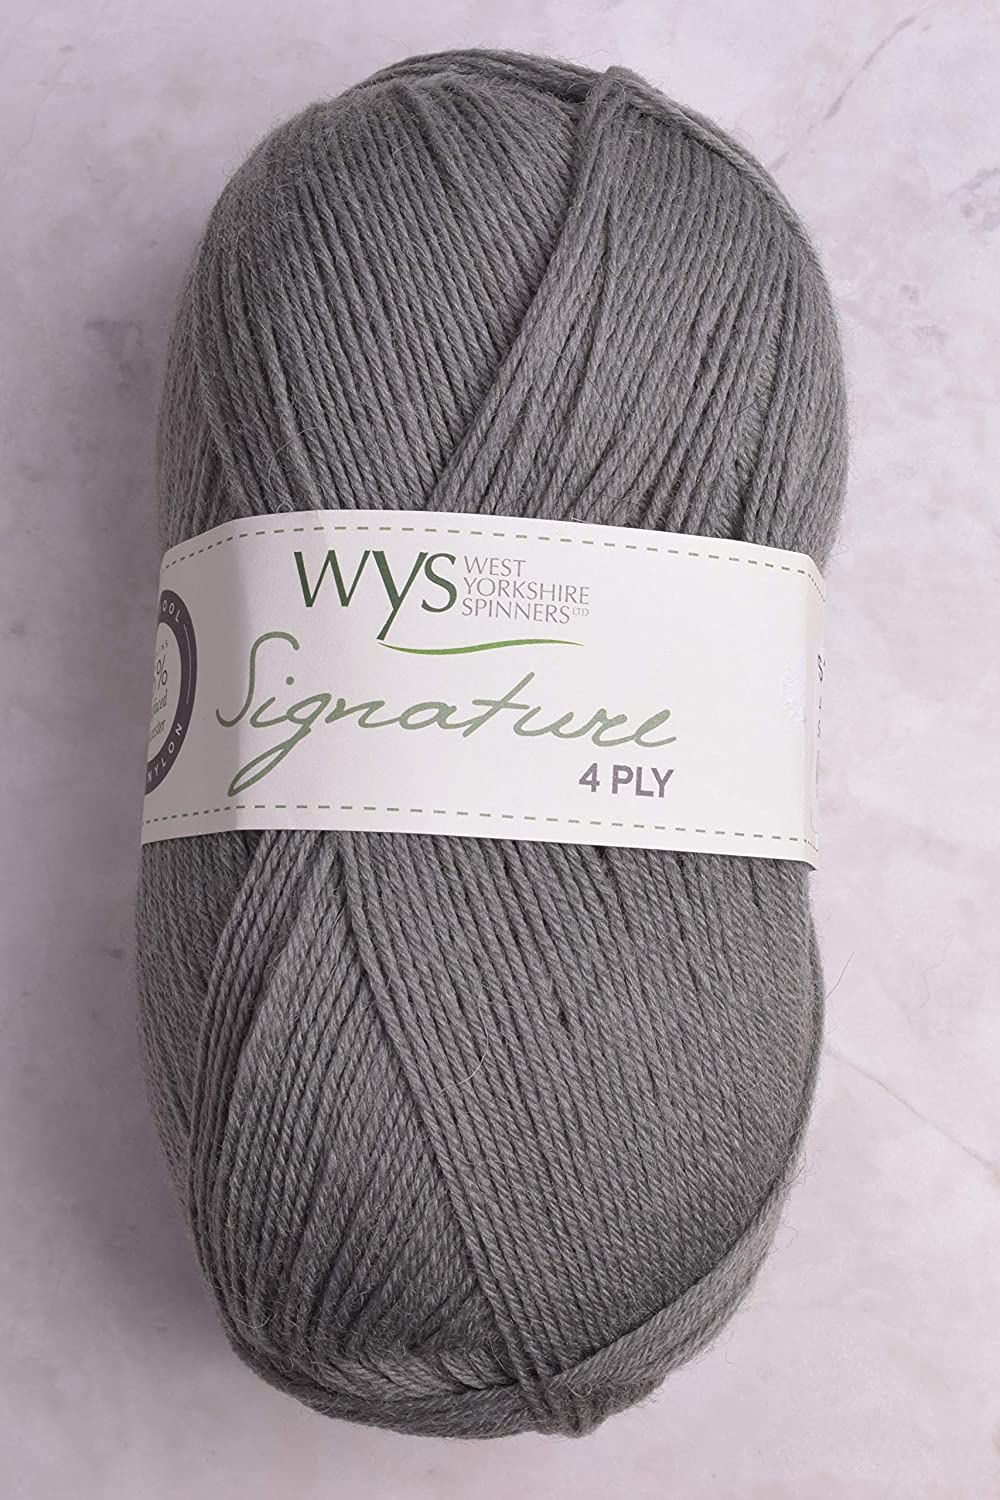 600 Poppy Seed West Yorkshire Spinners Signature 4 Ply Yarn Wool 100g